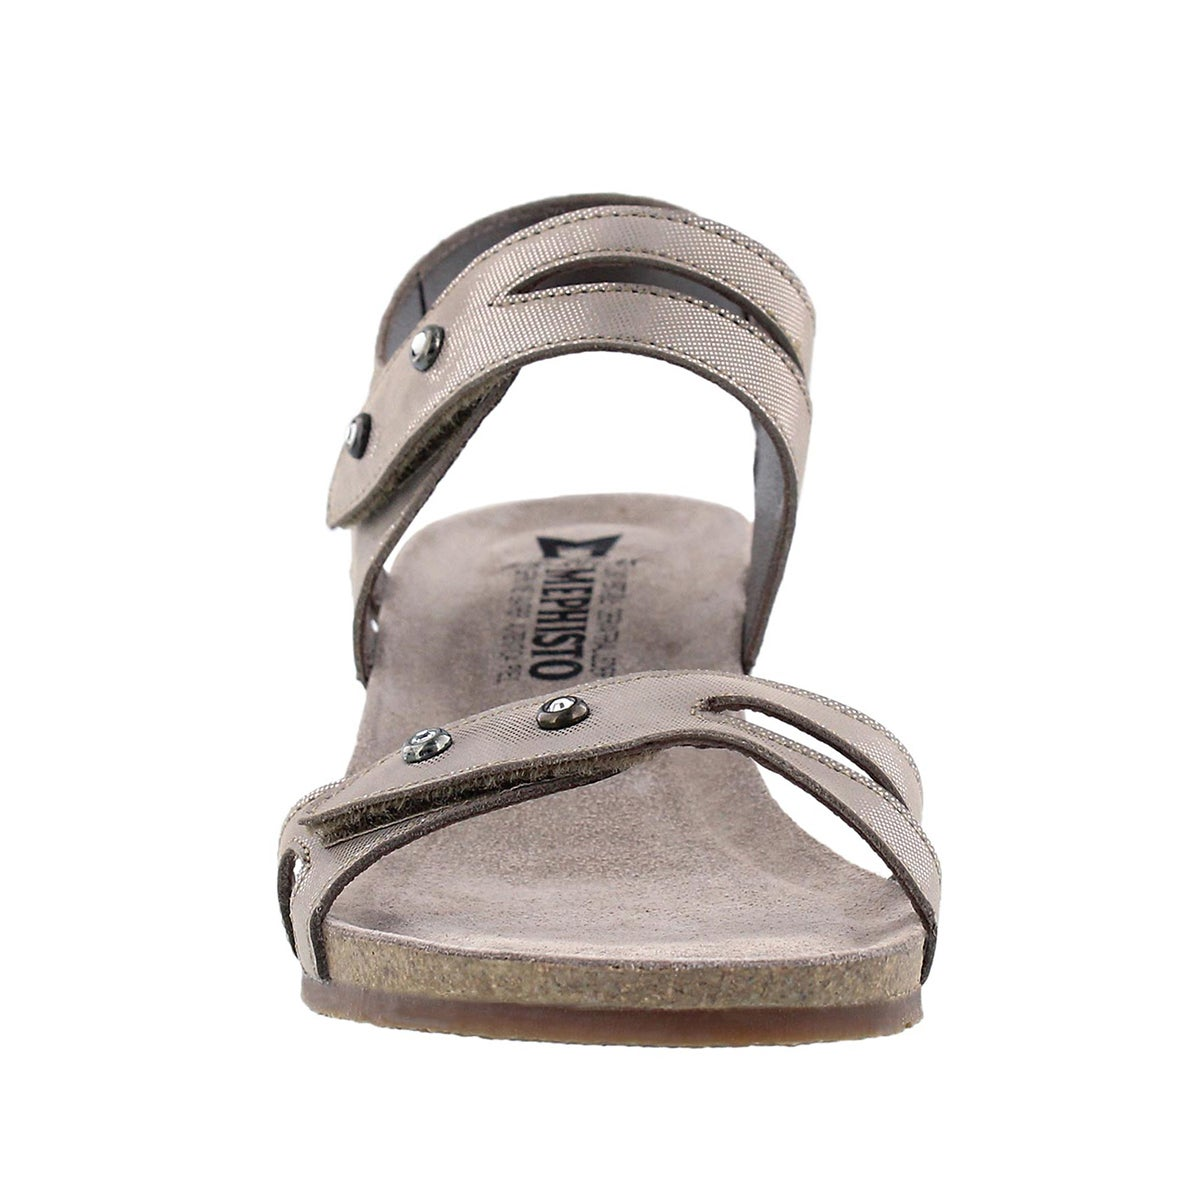 Lds Minoa silver wedge sandal